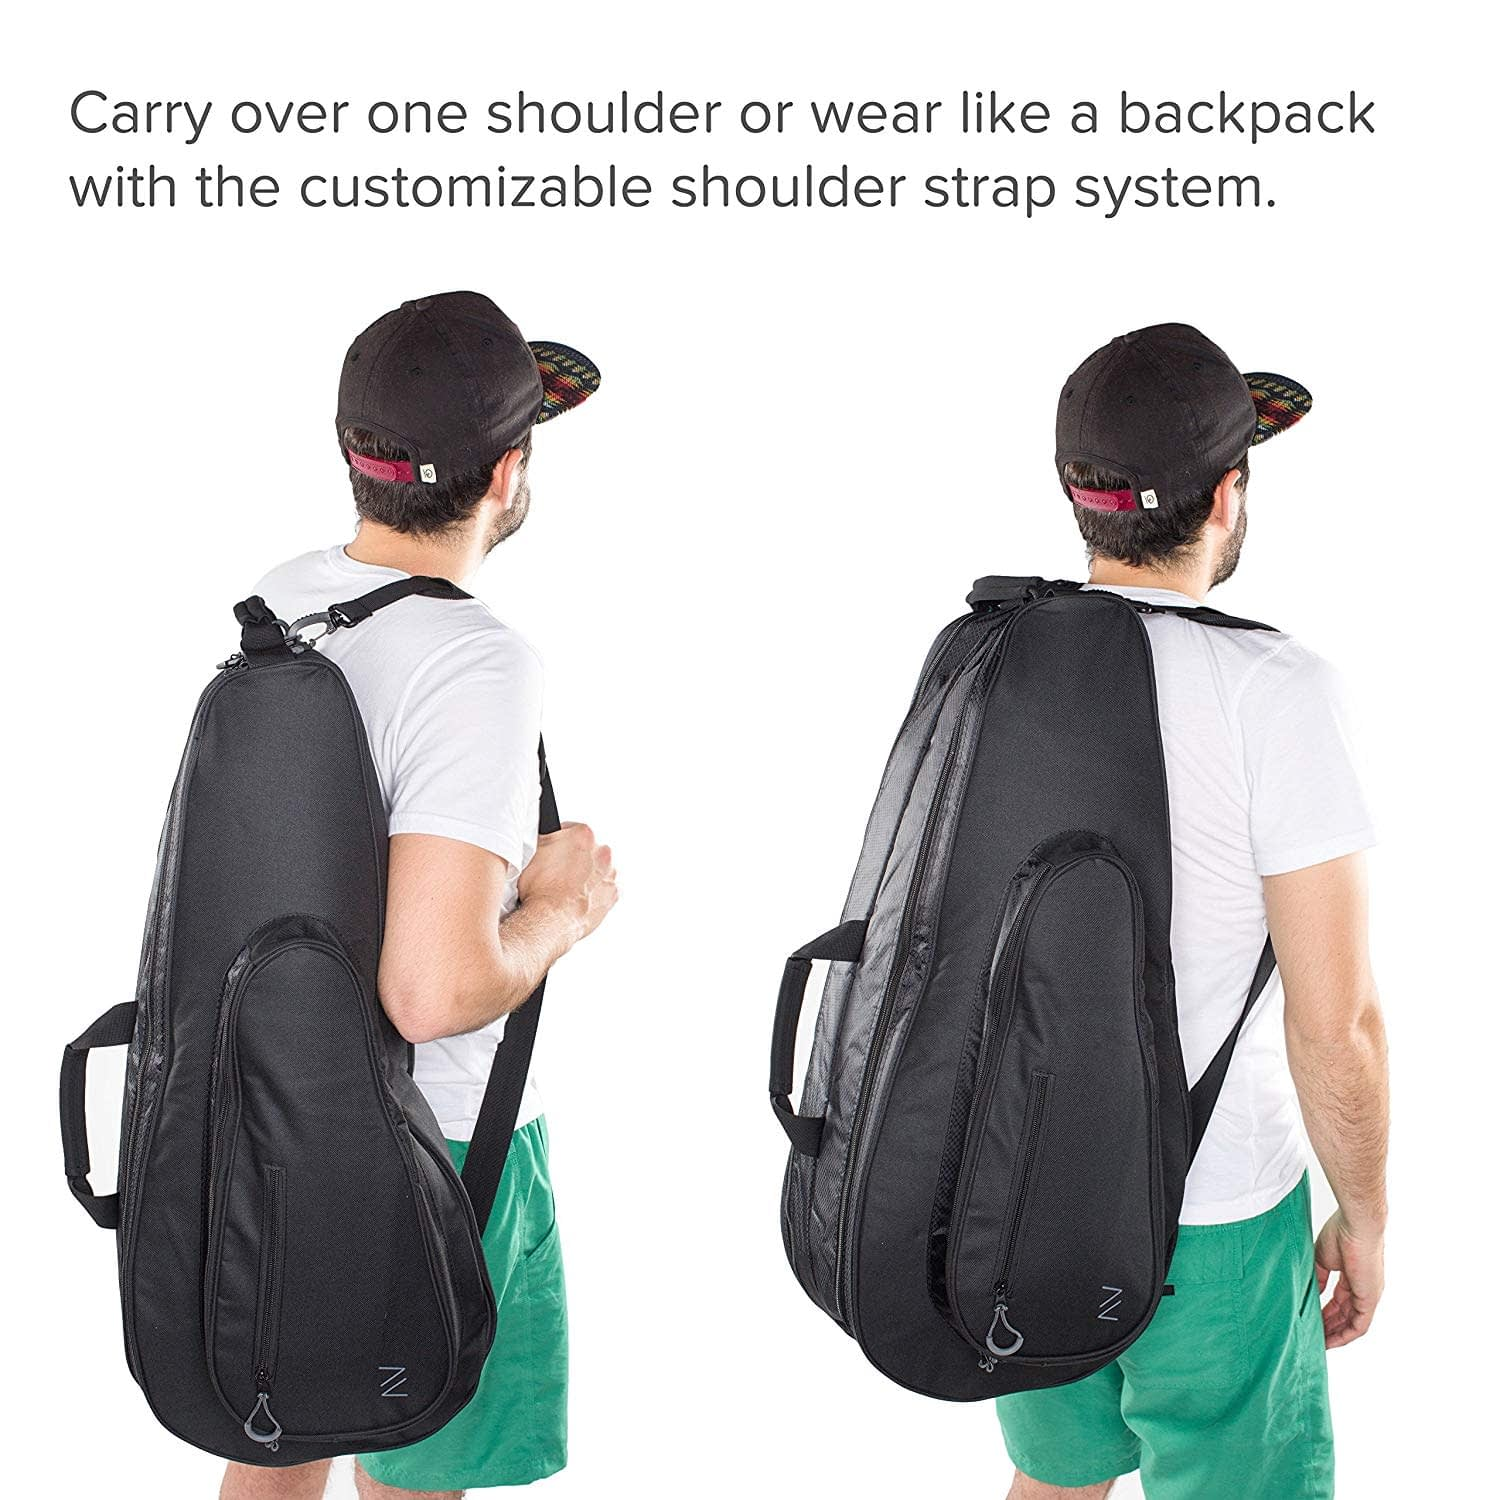 Carrying a tennis racket bag - Backpack or Shoulder Strap